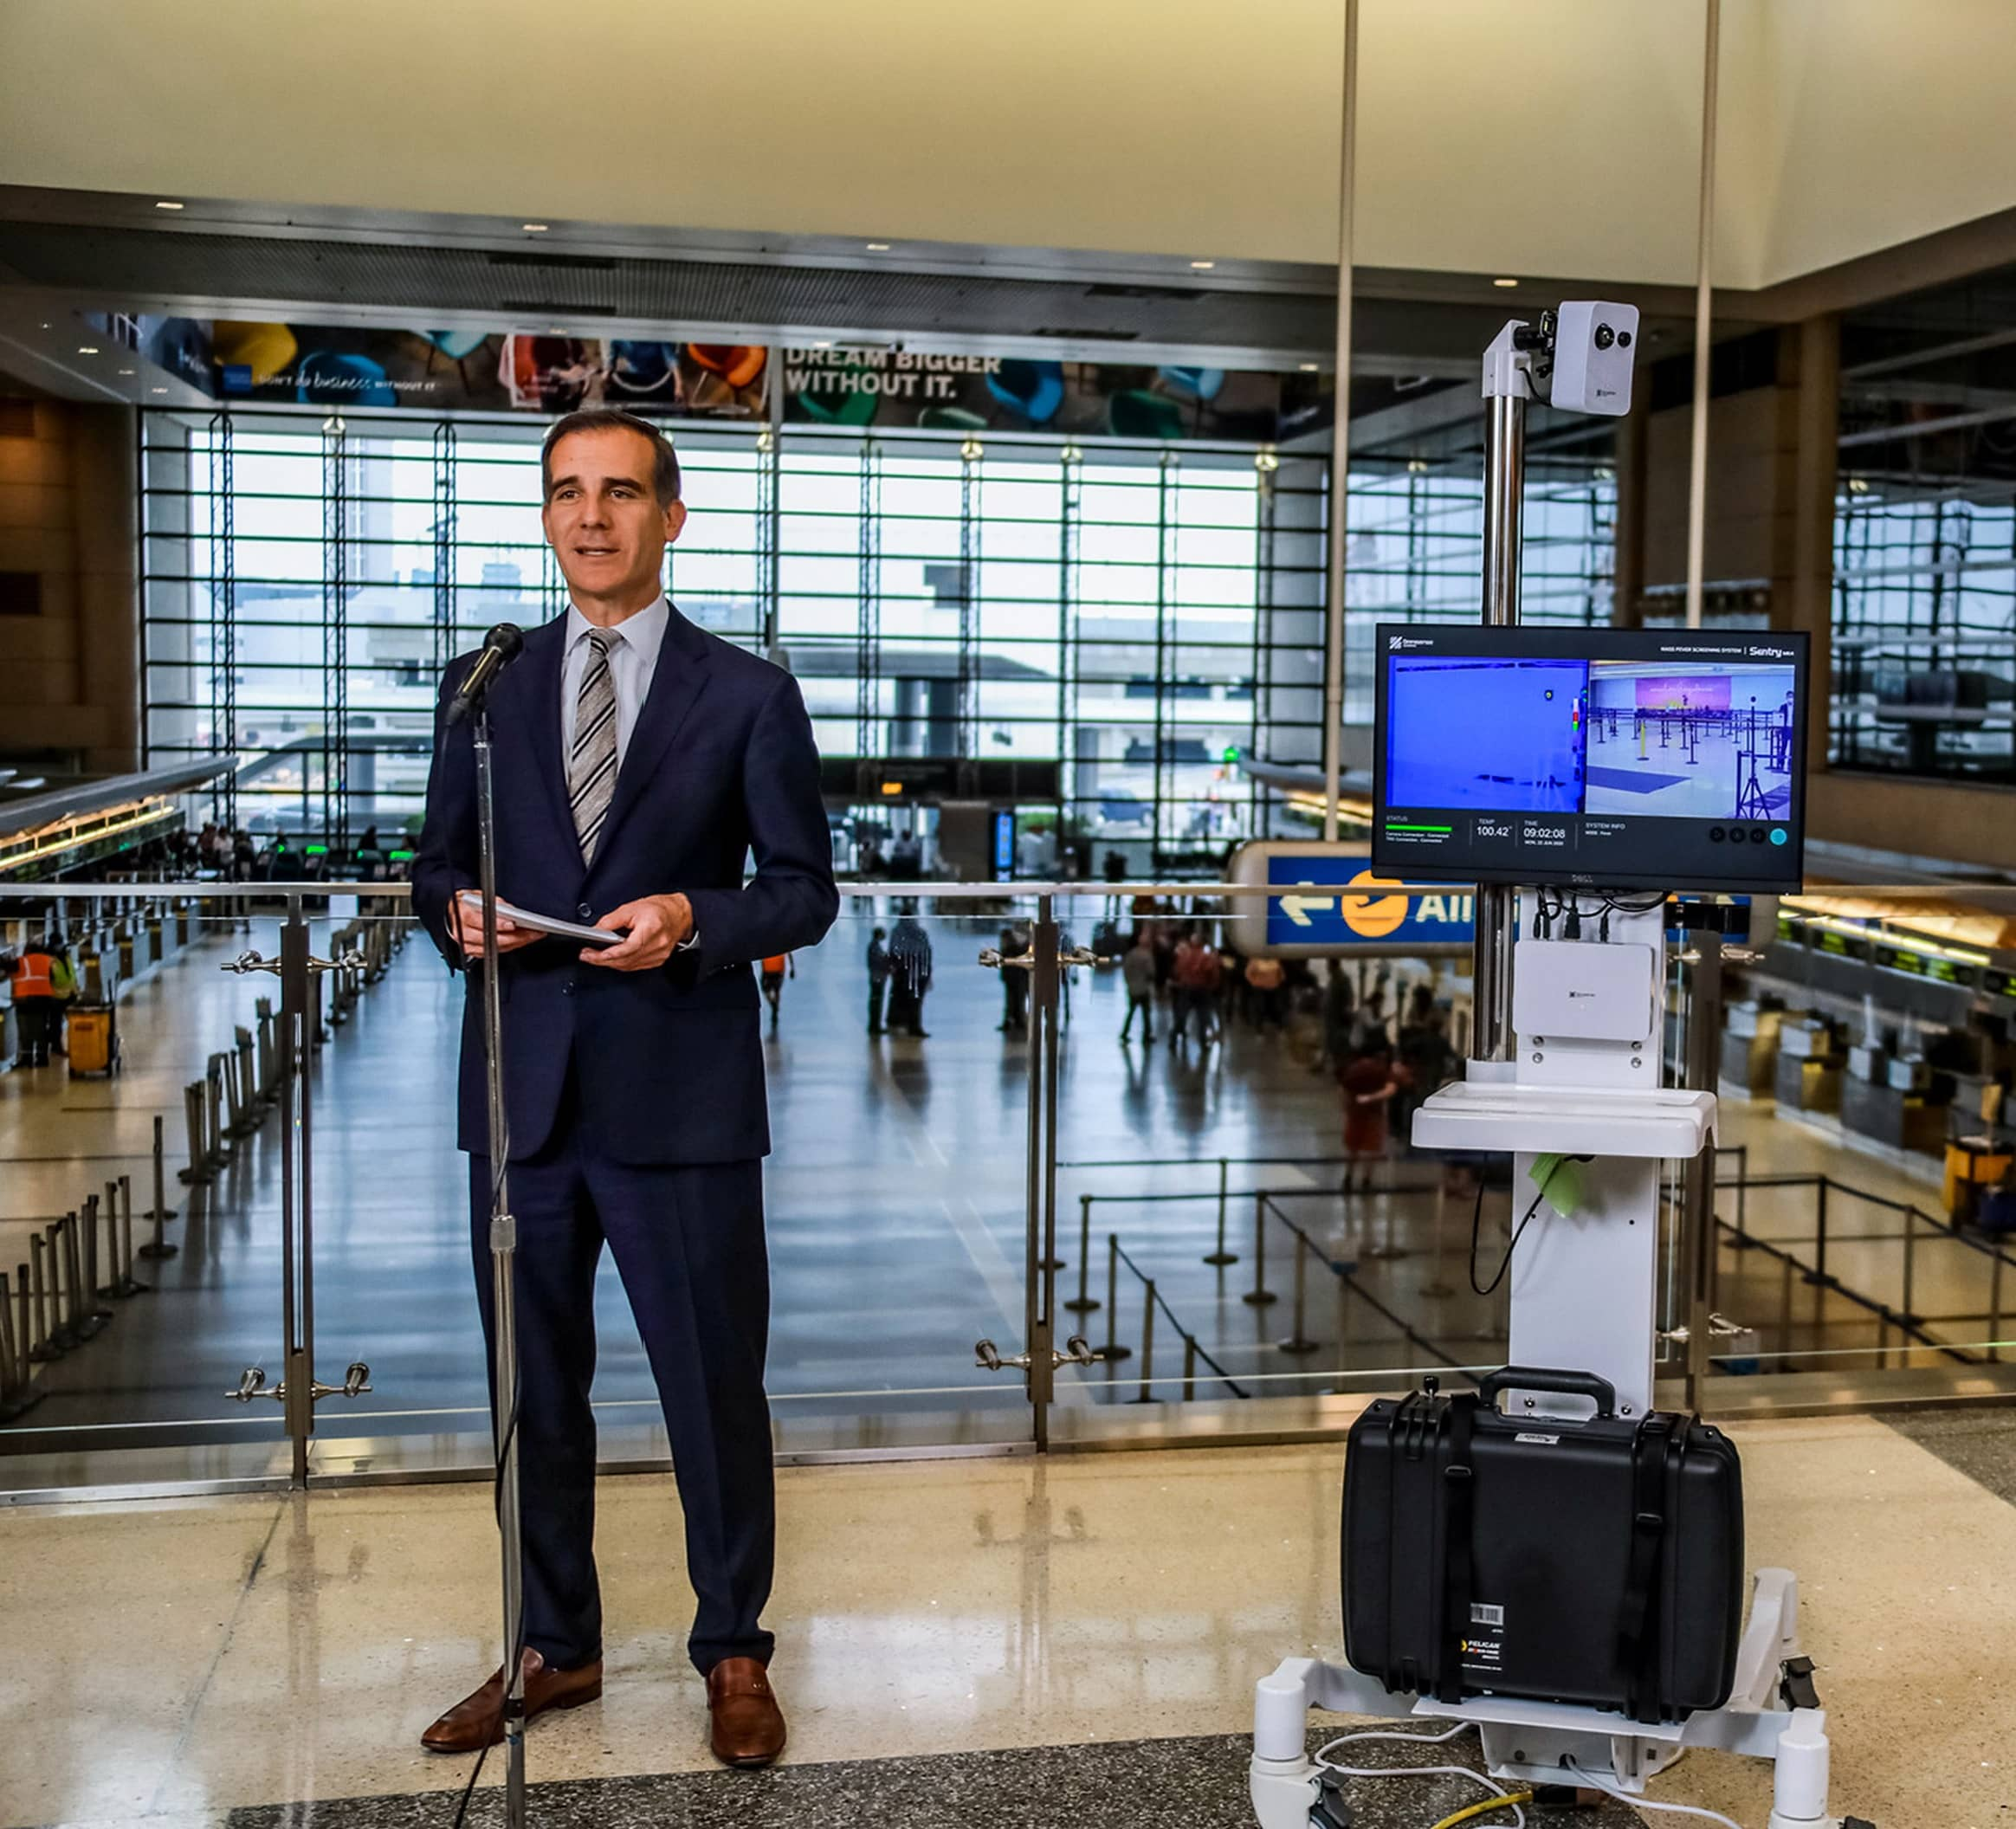 LAX TESTS THERMAL CAMERAS FOR DETECTING FEVERS IN TRAVELERS